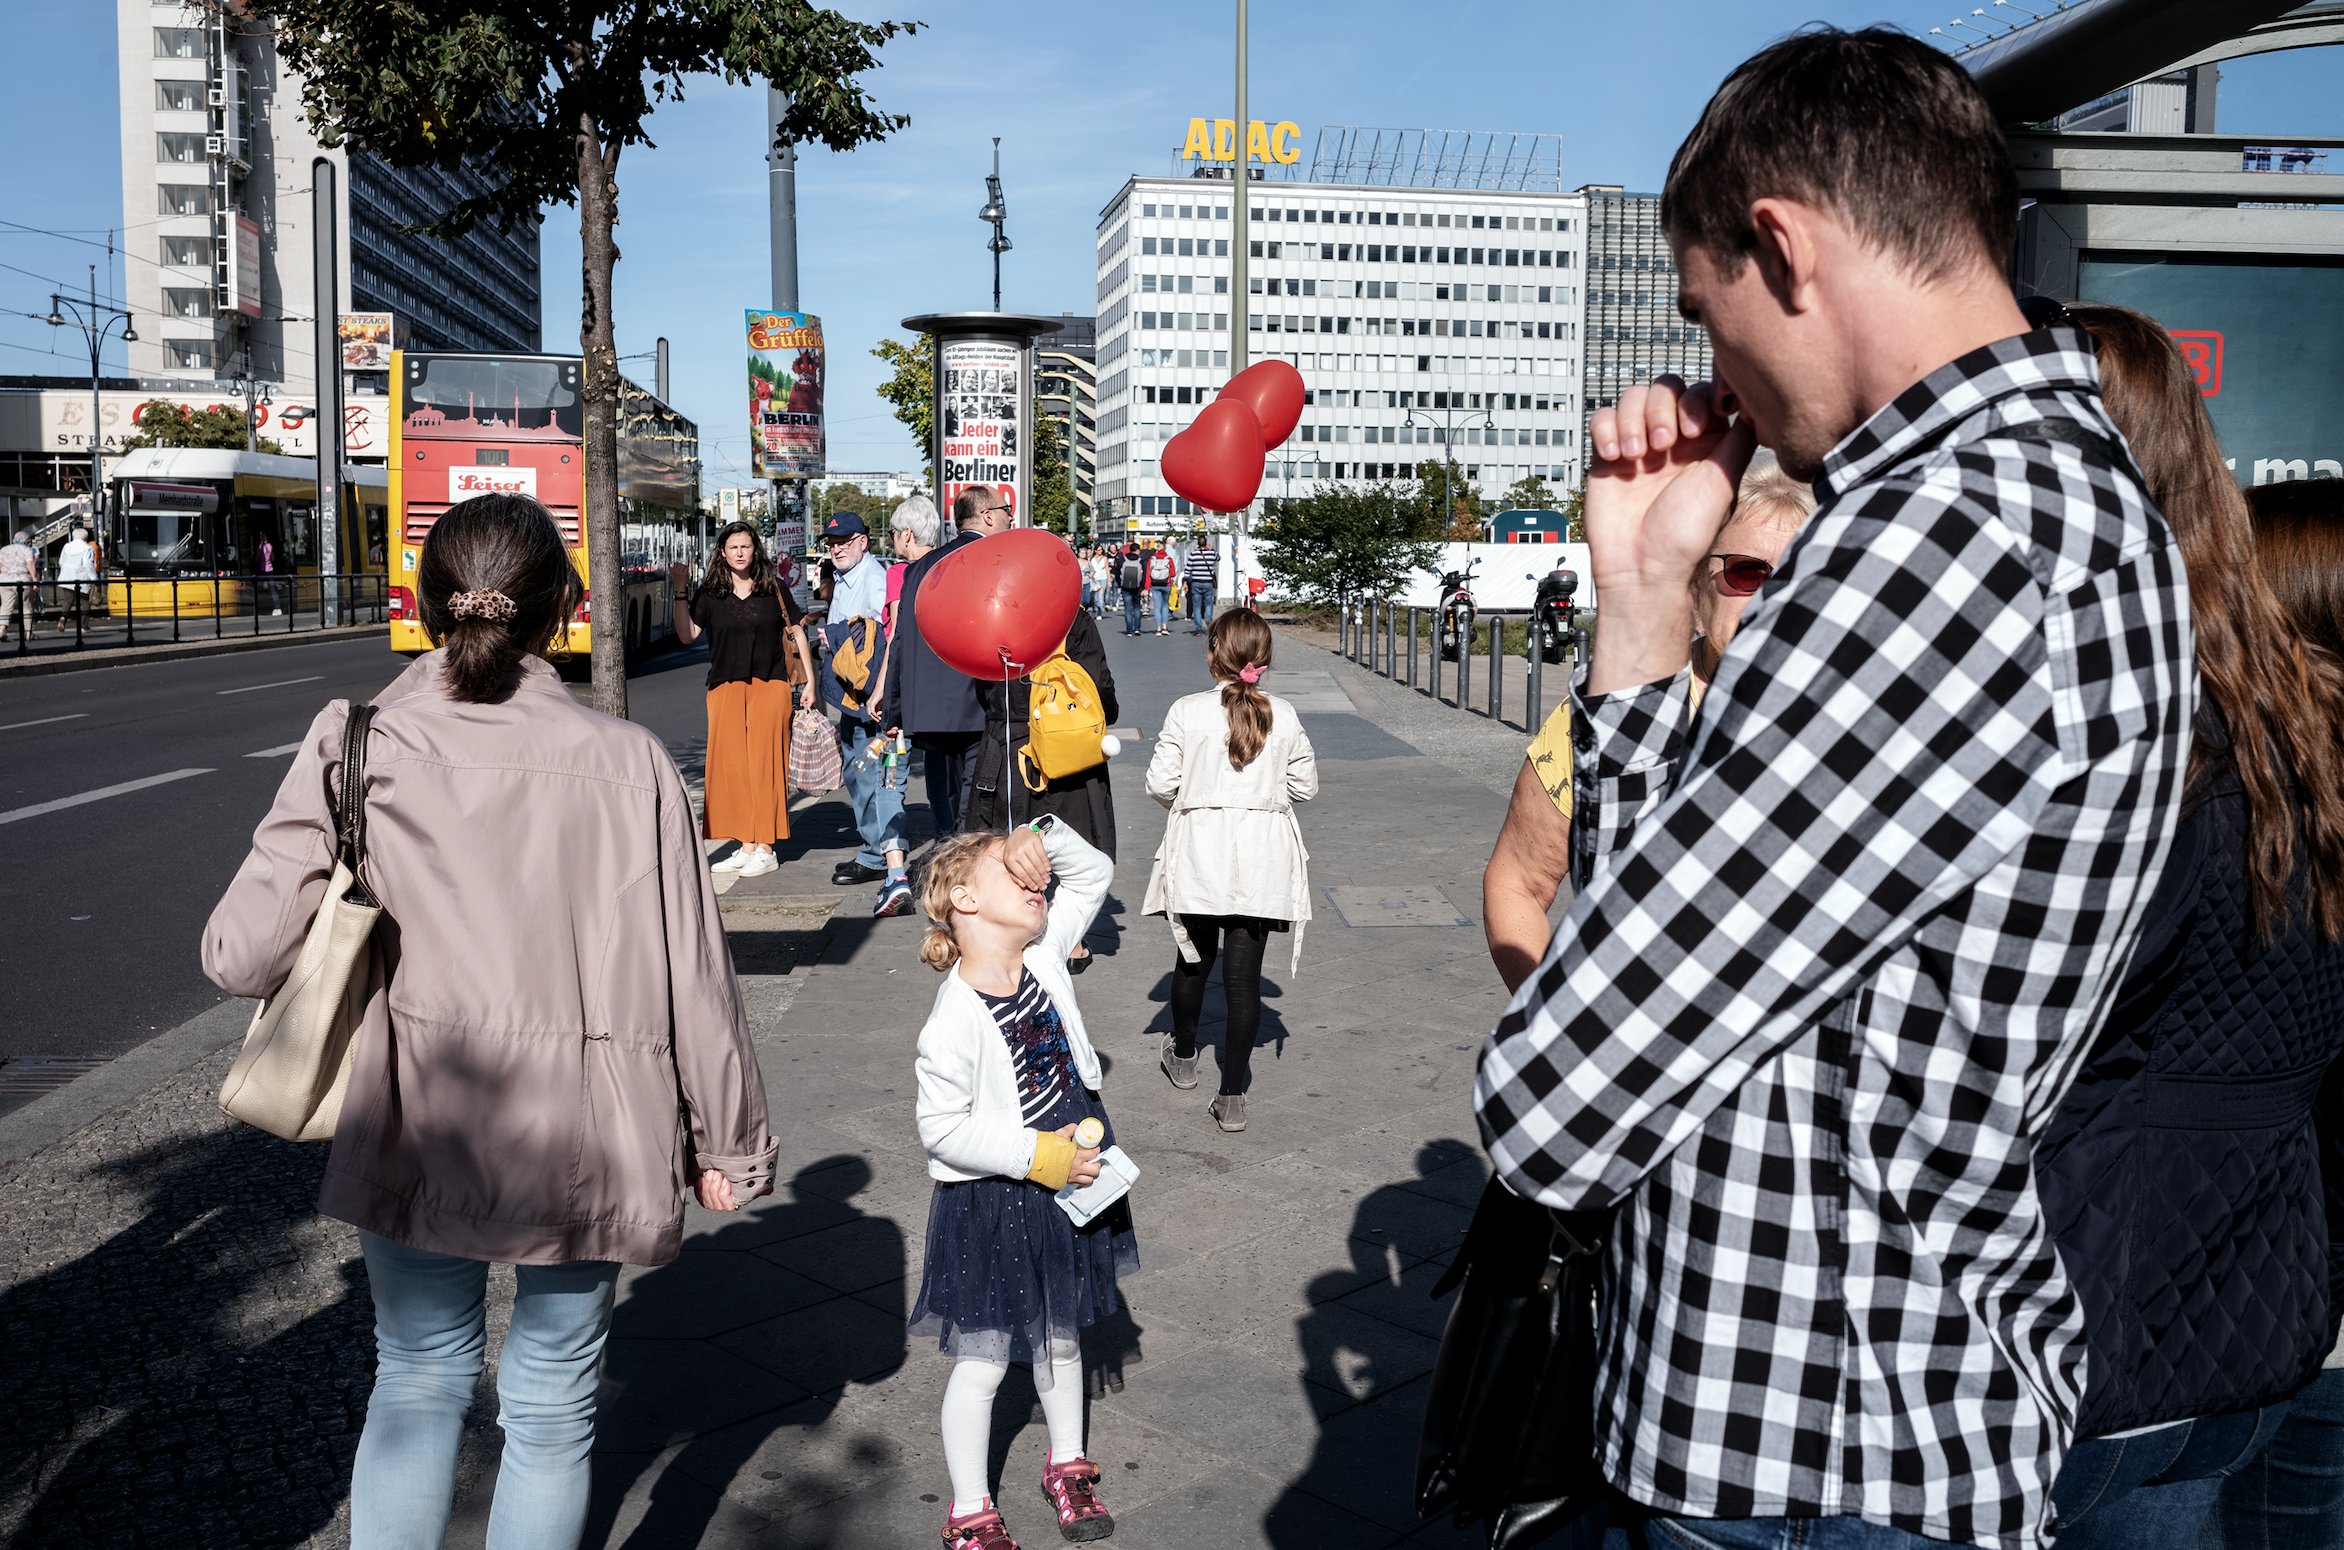 Another one with 28mm trying it in the streets as well, getting closer and bringing some more dynamic into the frames. Berlin 2019 (Leica M10 + Leica Summicron 28mm 2.0 ASPH)